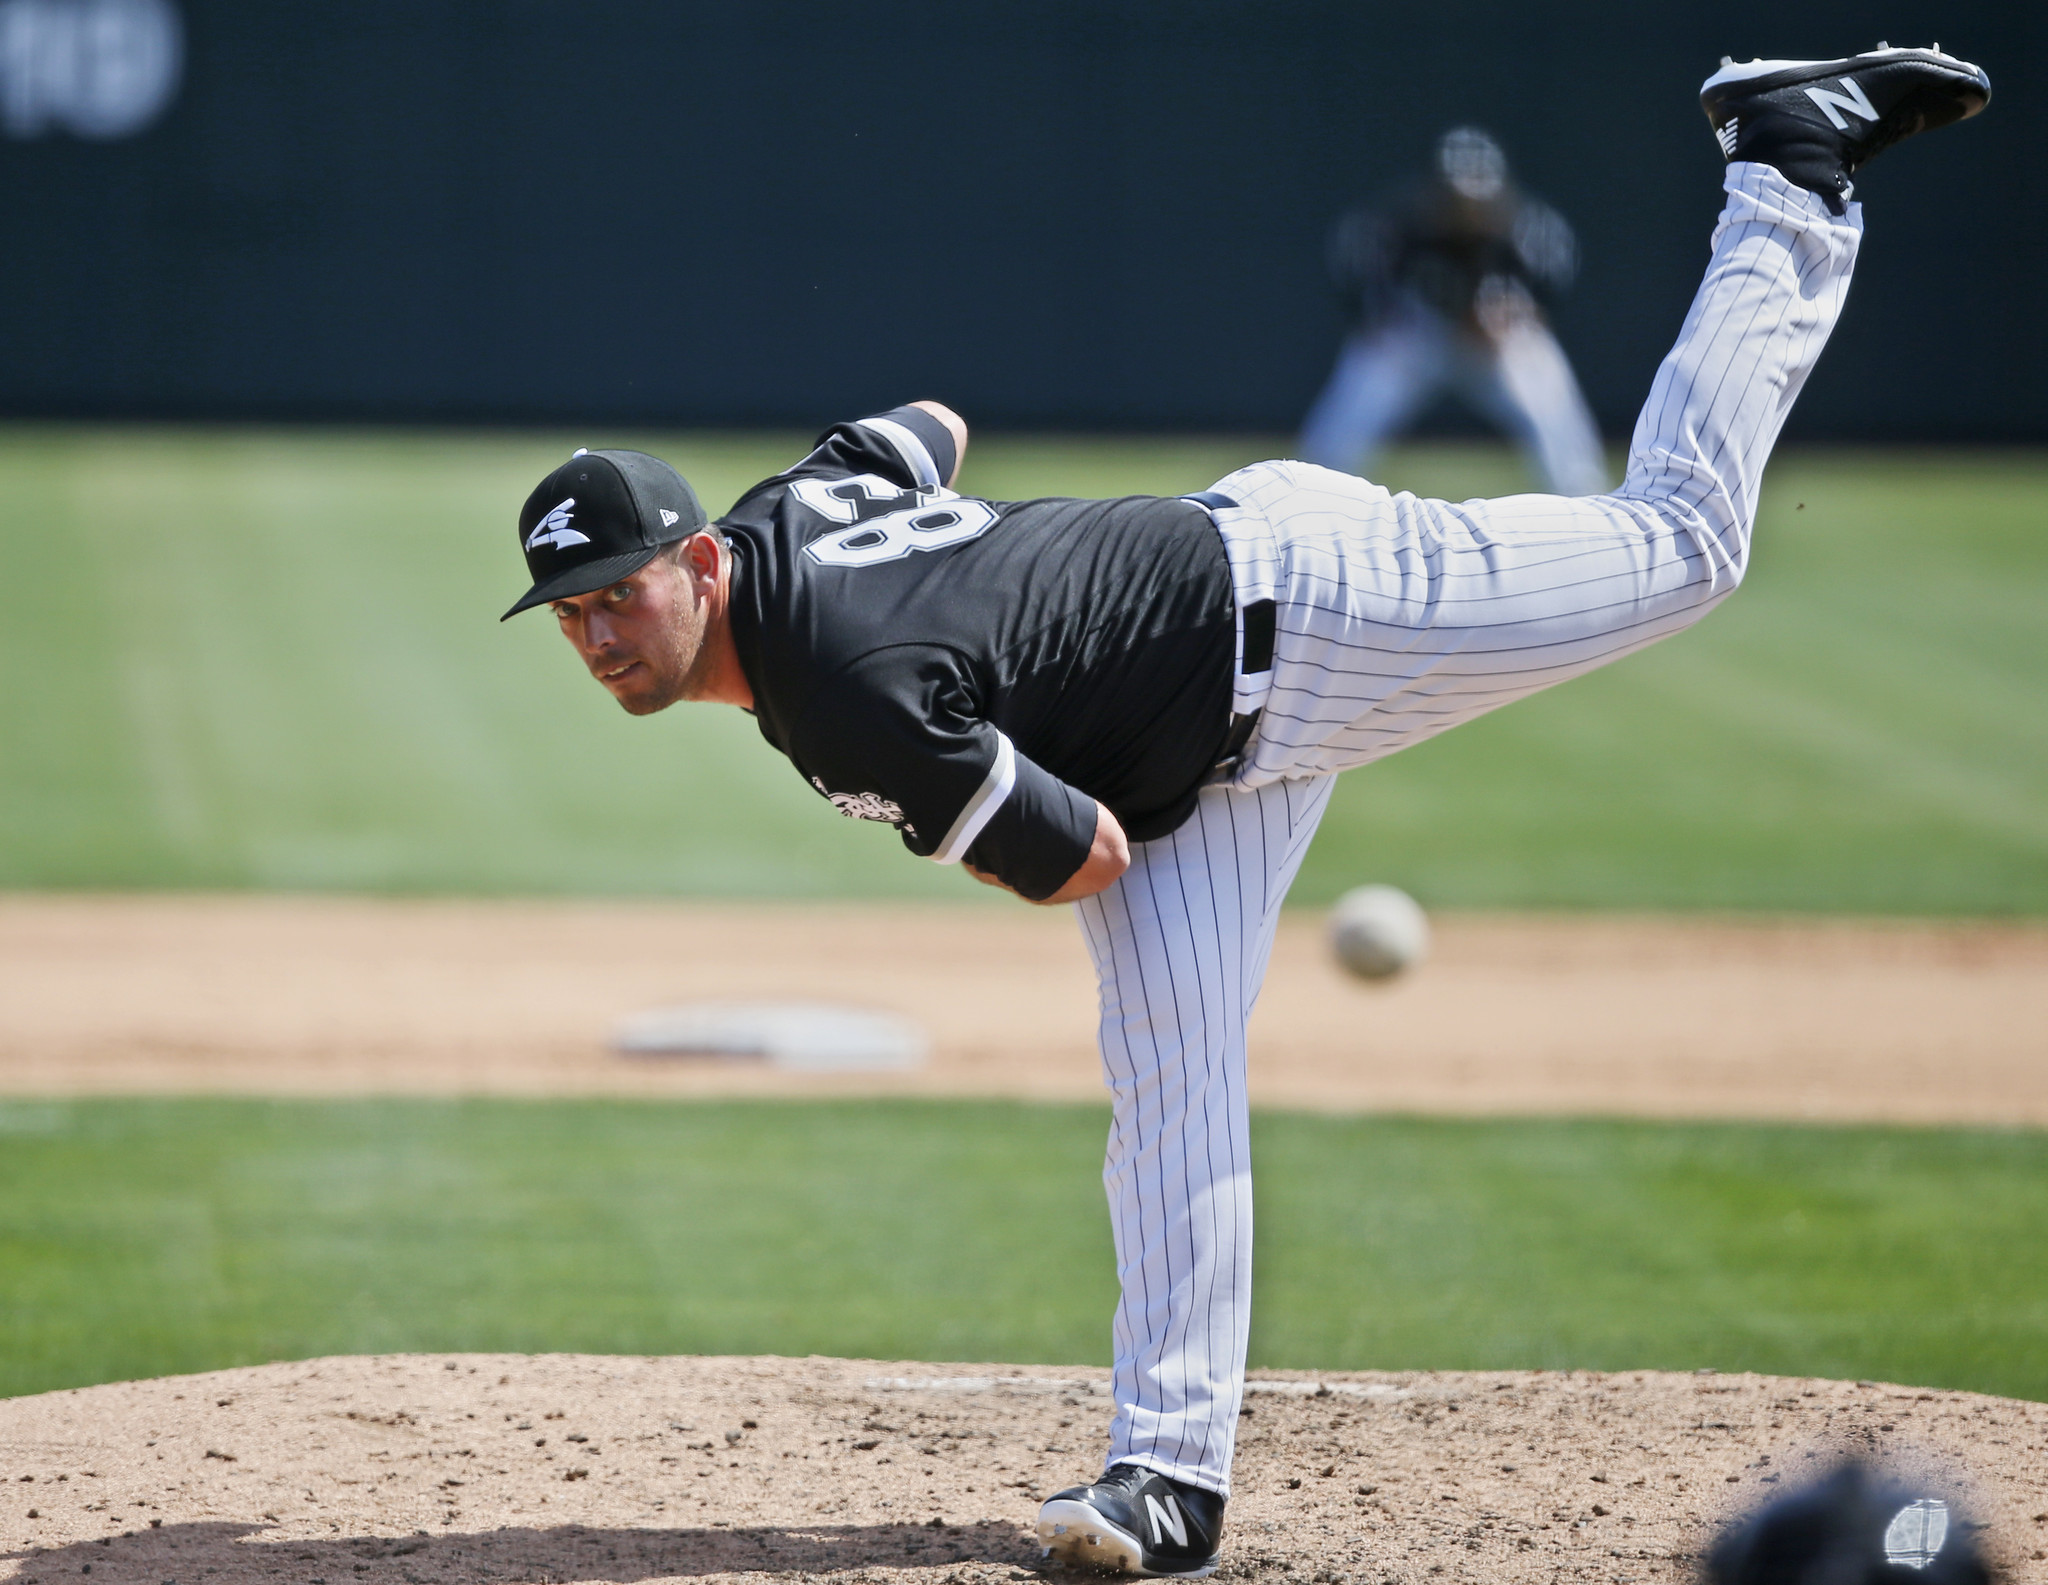 Spring training: White Sox 7, Indians 3